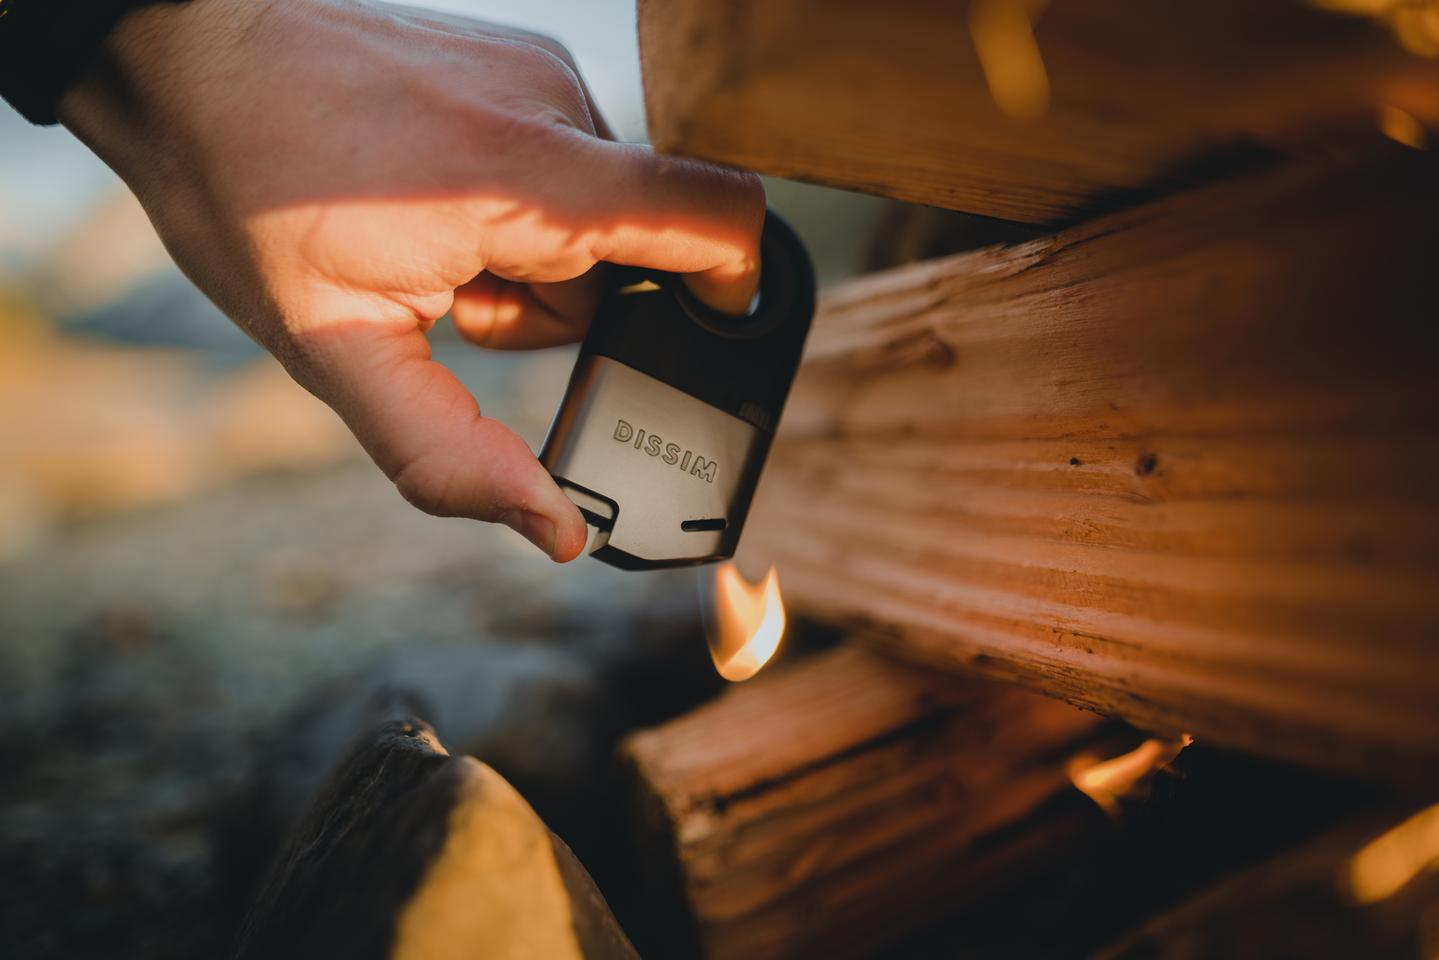 Lighting a tinder/kindling/fuel stack is a situation in which a small disposable lighter is almost guaranteed to burn your thumb; the Dissim lighter makes it less precarious